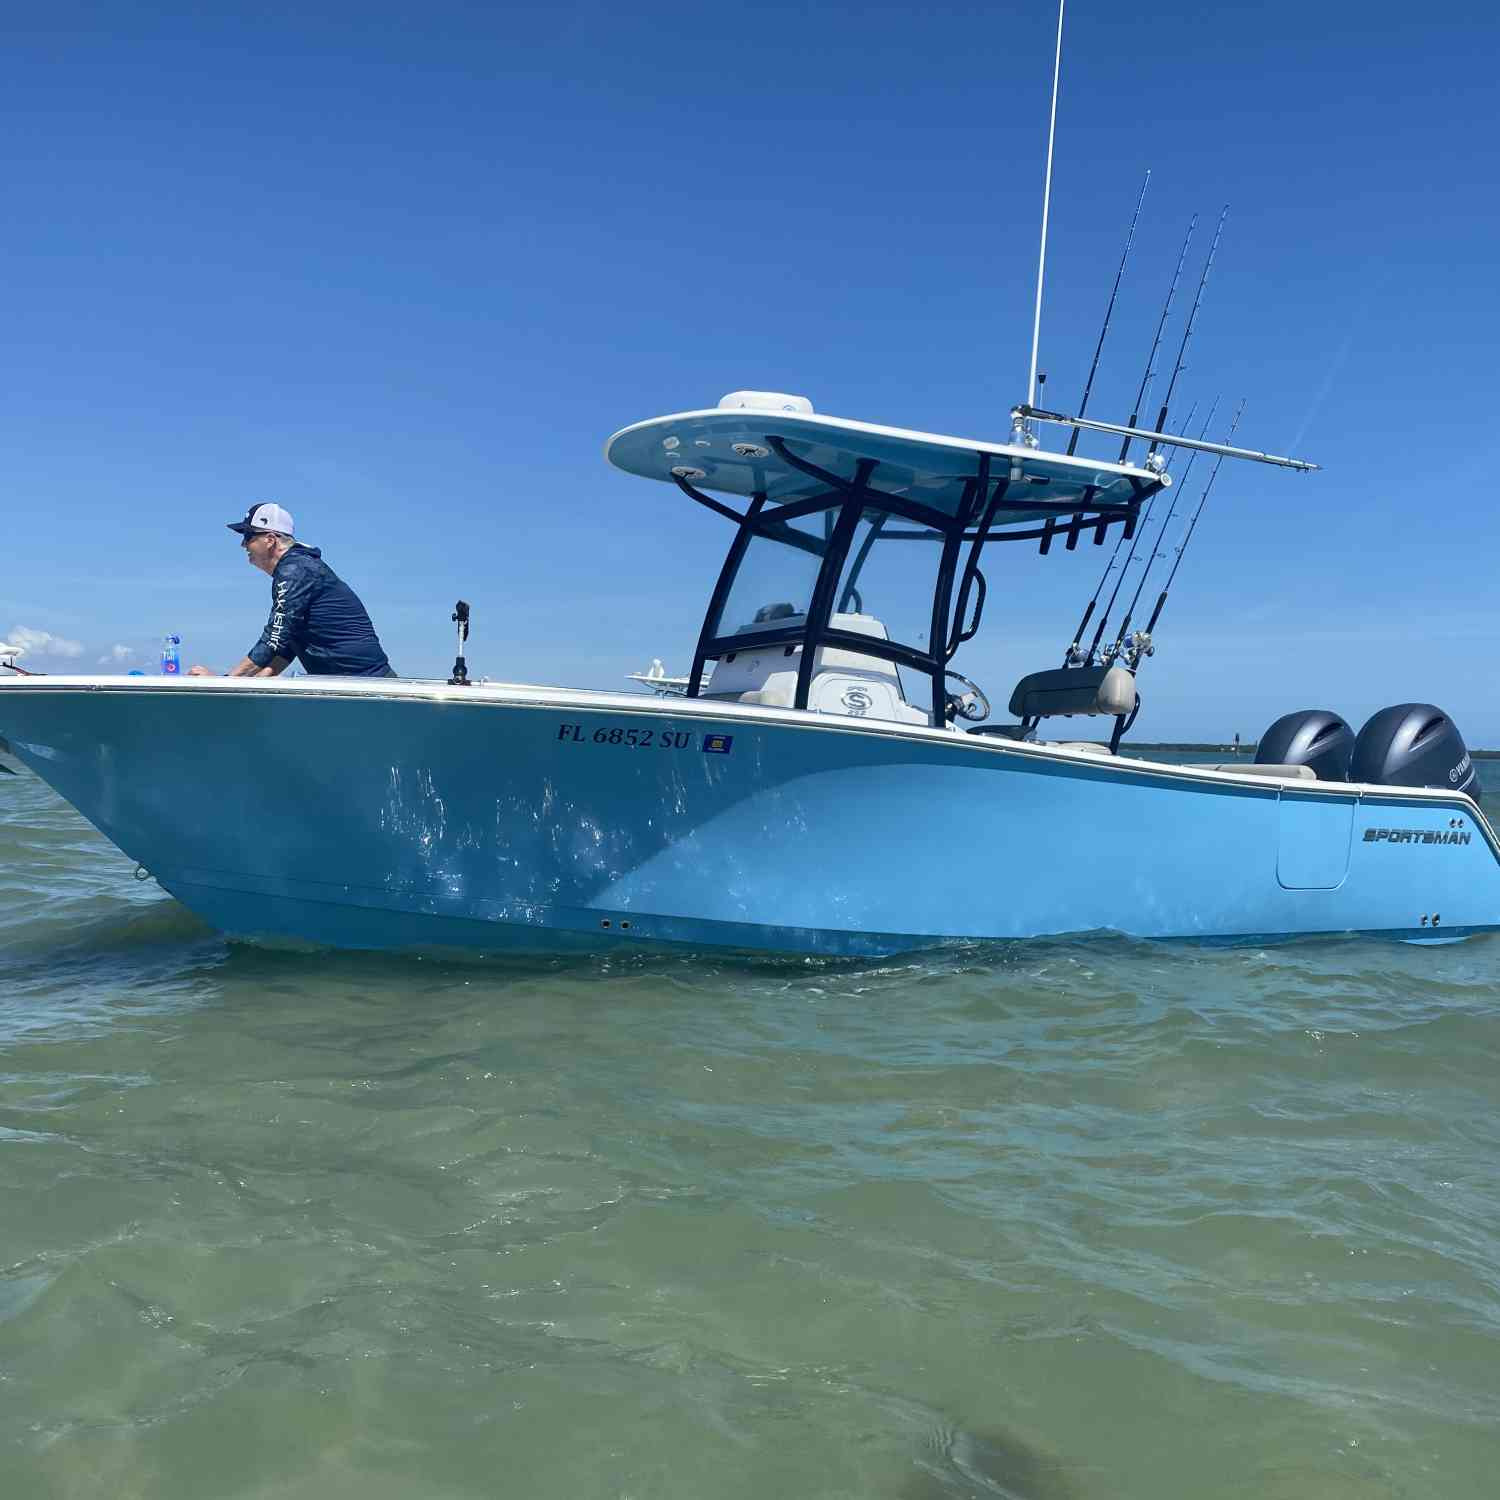 Title: 252 sitting pretty - On board their Sportsman Open 252 Center Console - Location: Sebastian Inlet. Participating in the Photo Contest #SportsmanApril2021